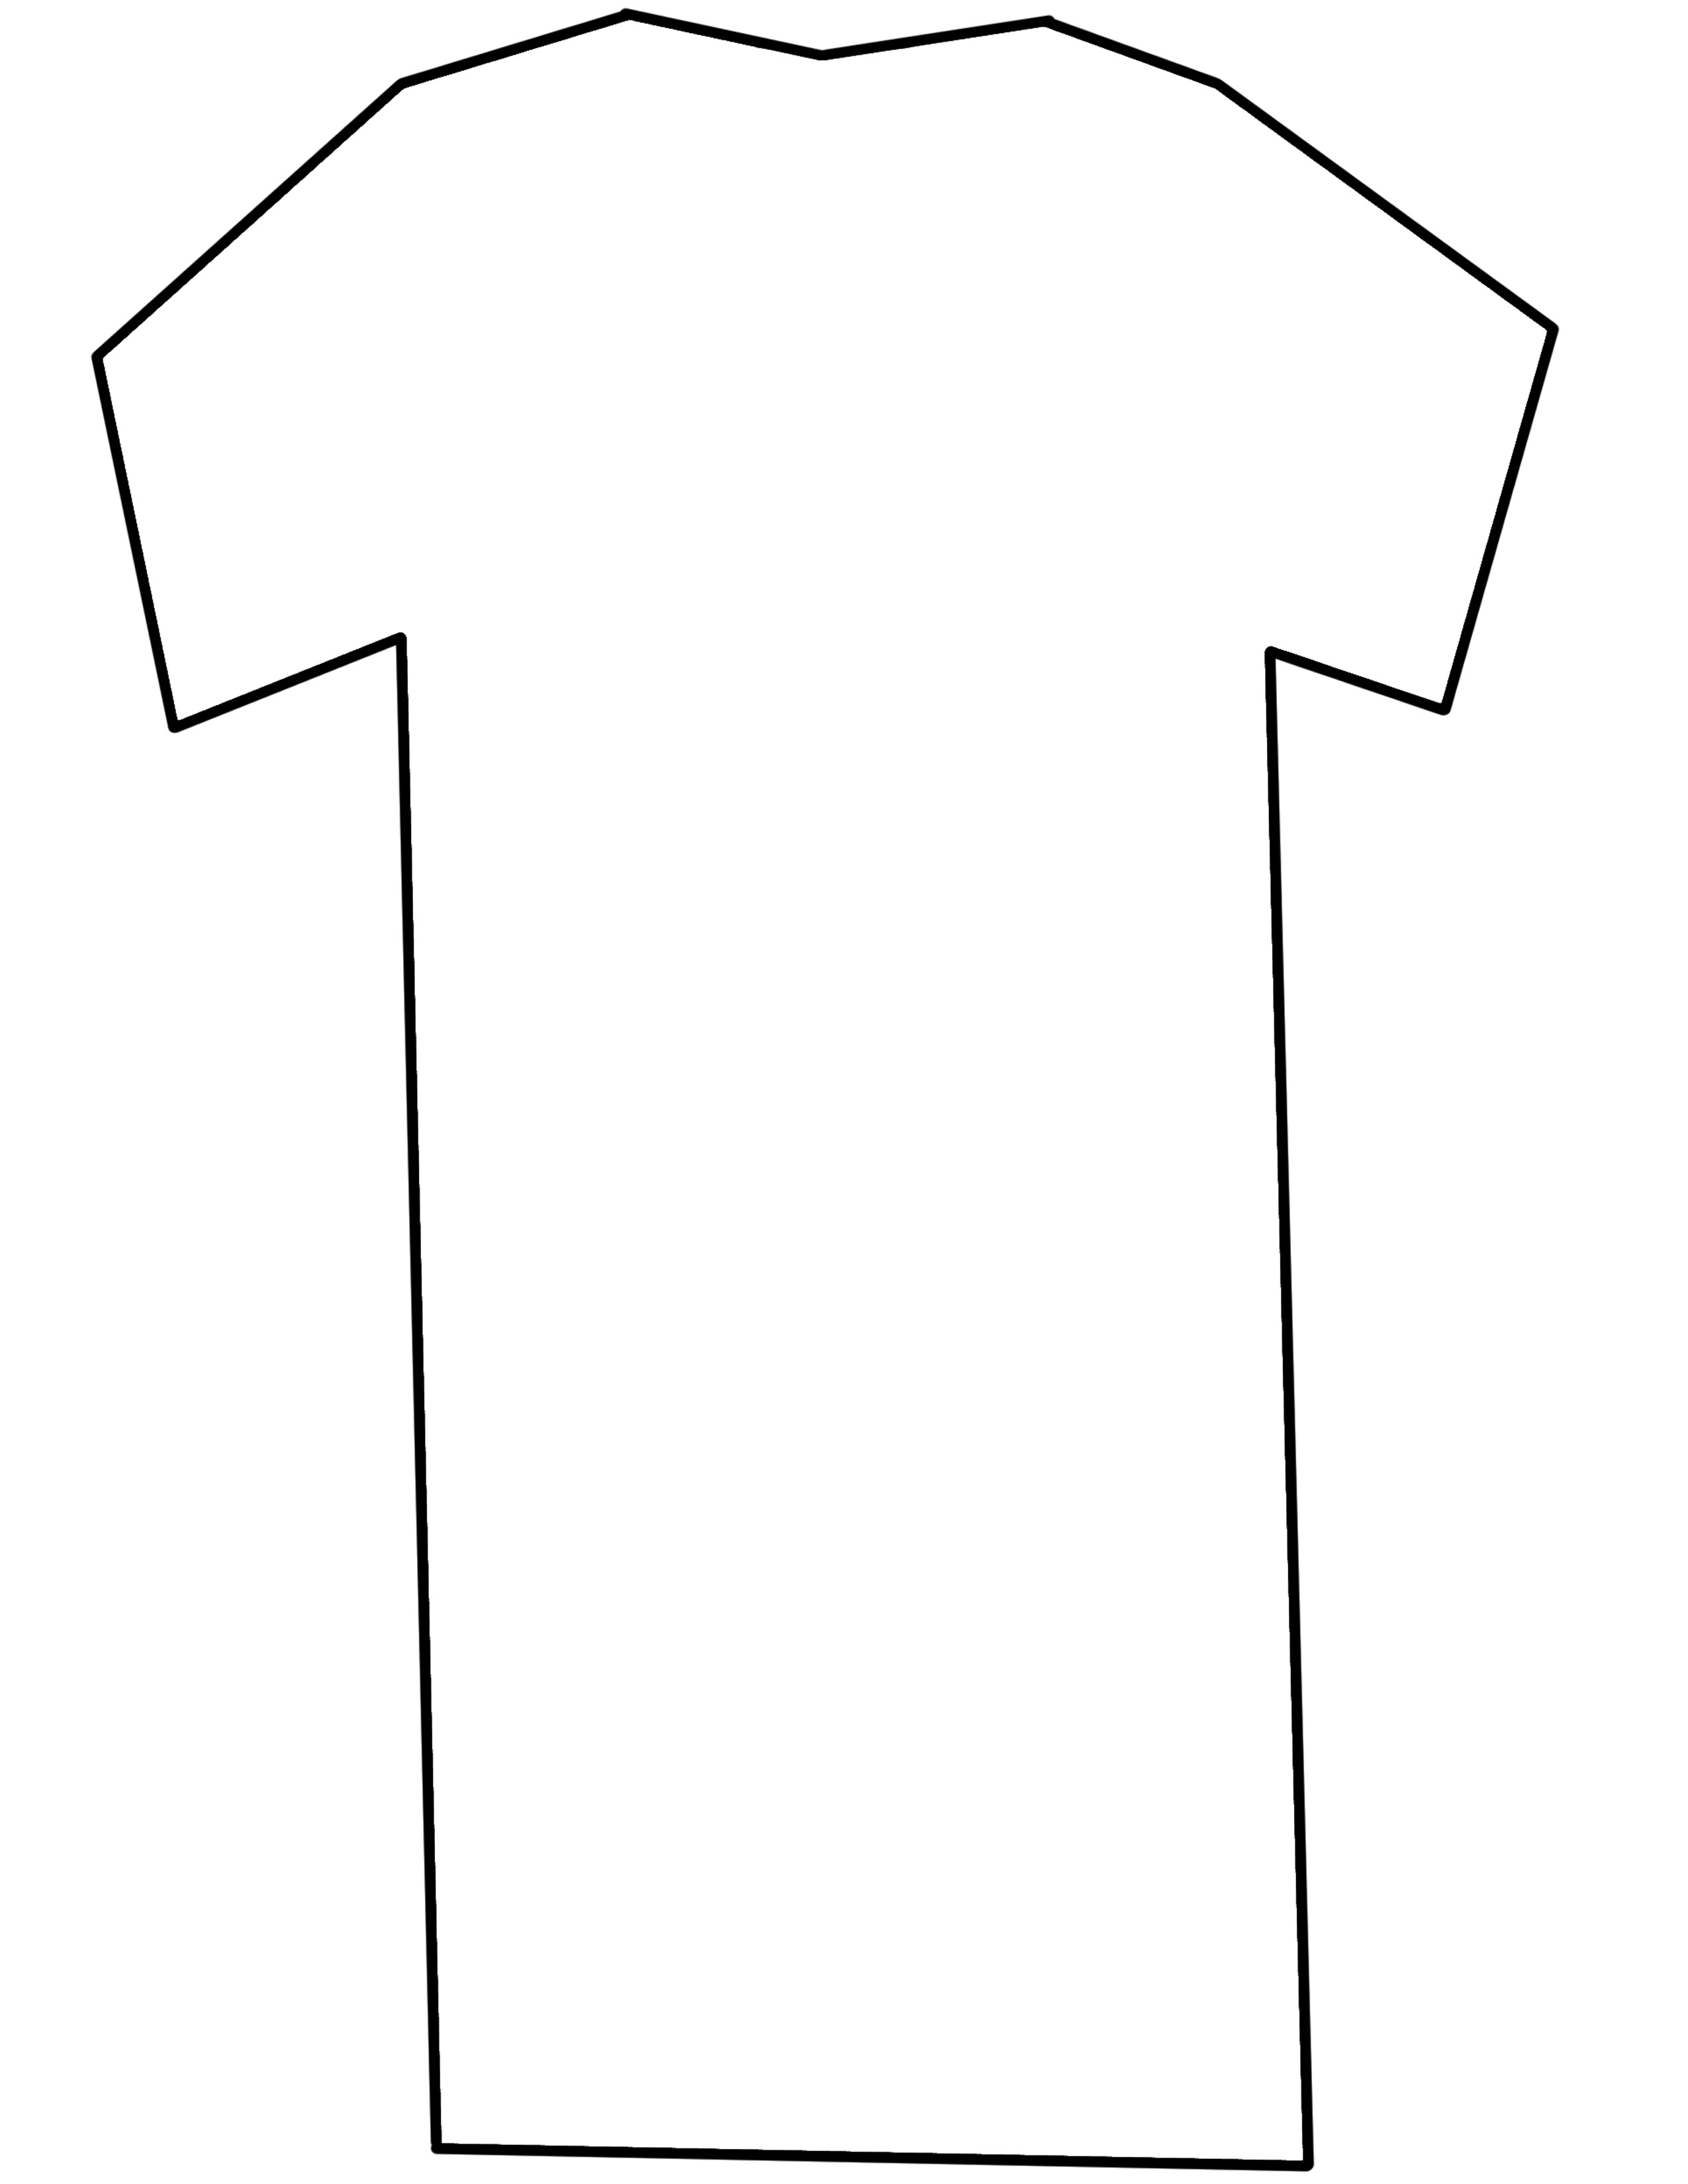 Free T Shirt Printable Template, Download Free Clip Art, Free Clip.